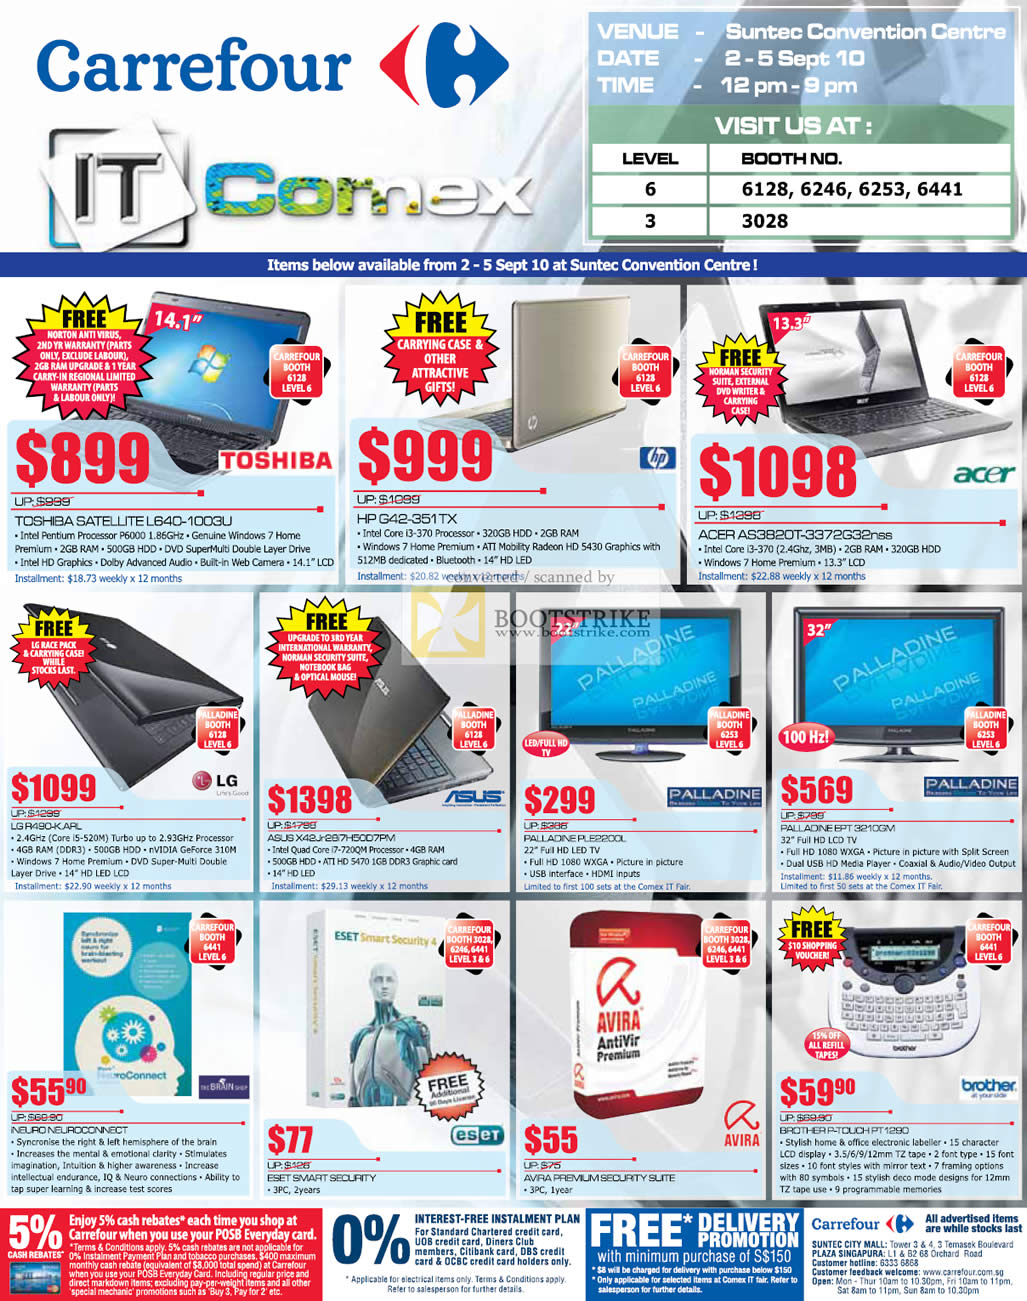 Carrefour's Comex 2010 Price Lists, Flyers, Promotions